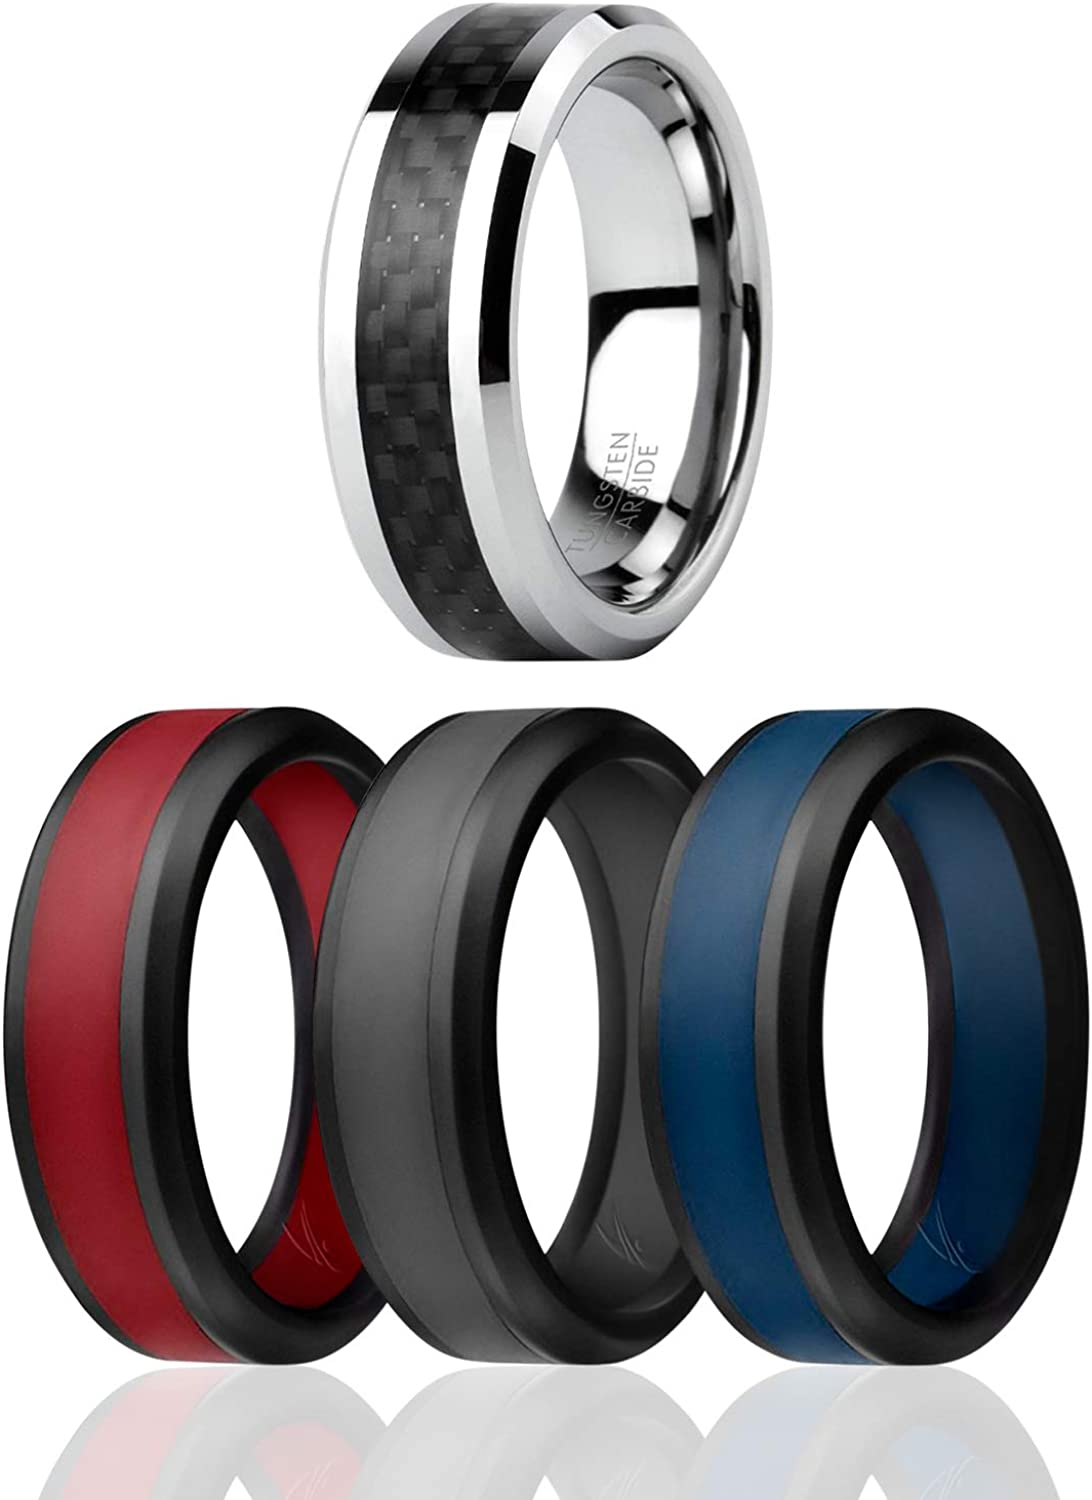 ROQ Classic 8mm Tungsten Carbide Wedding Band Ring for Men /& 3 Silicone Rings for Work//Sport//Hiking Carbon Fiber Style